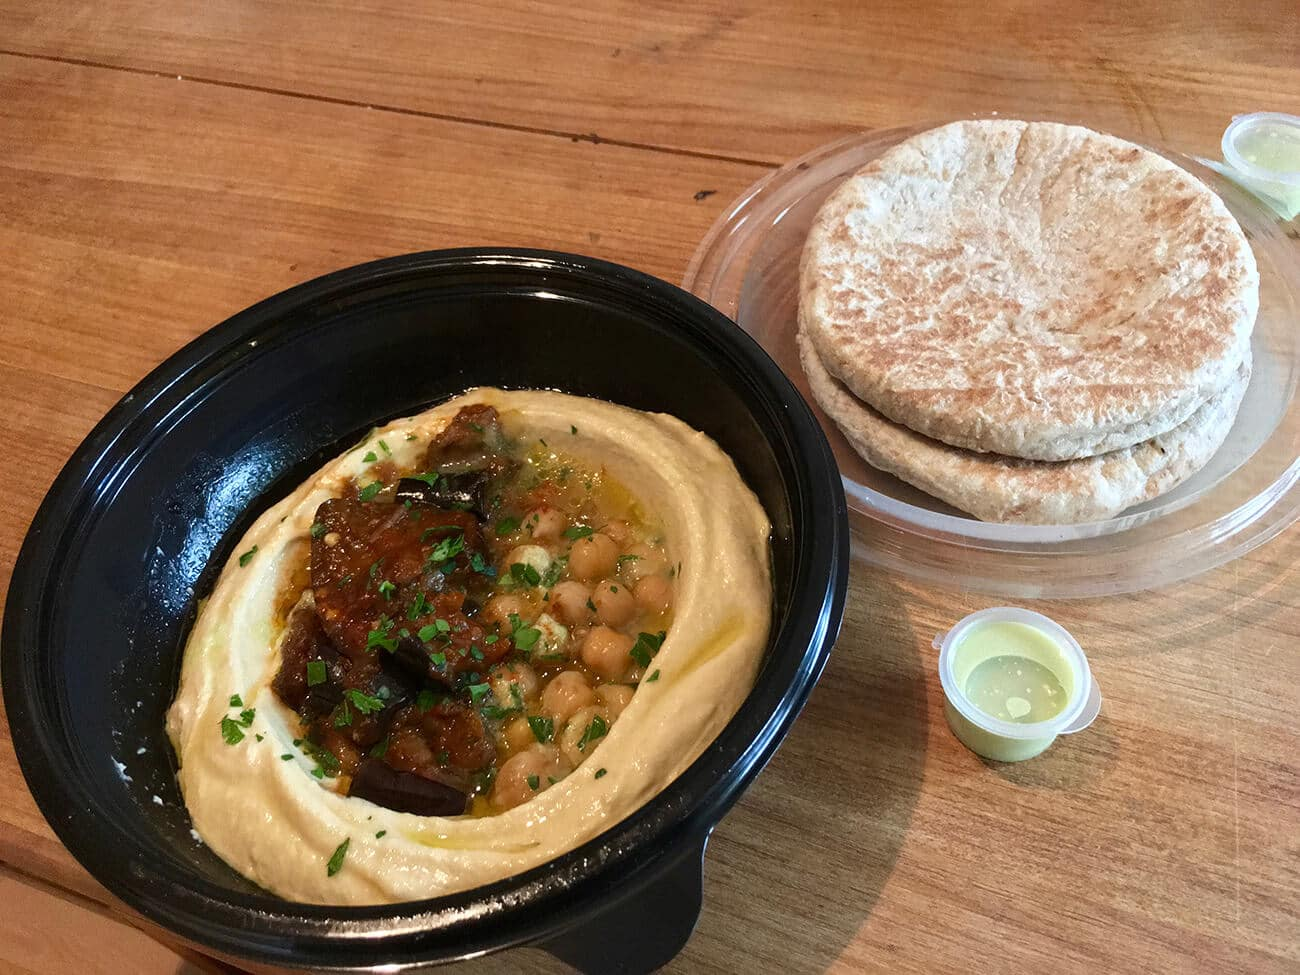 A delicious vegan meal with hummus in Amsterdam. Read this local's guide to the best vegan food in Amsterdam!